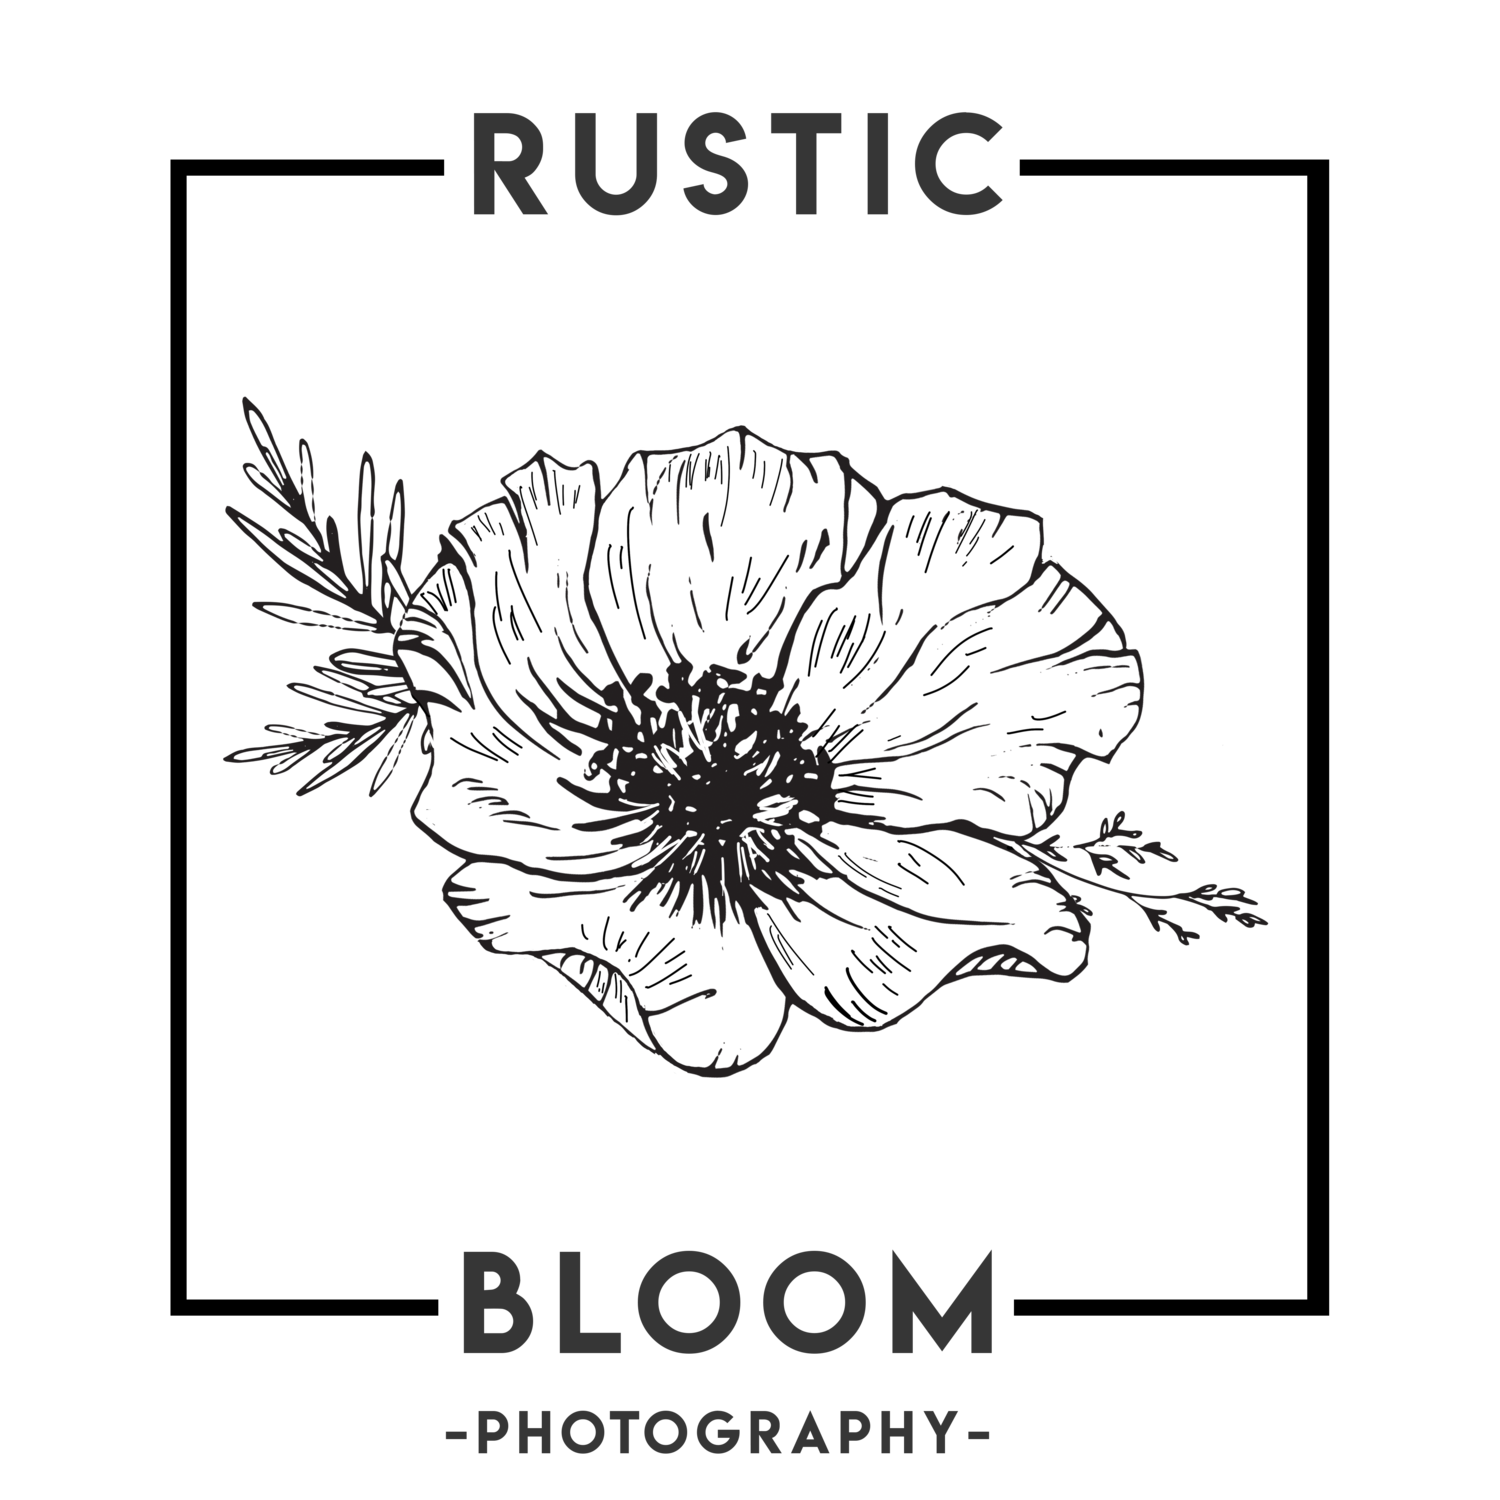 Rustic Bloom Photography